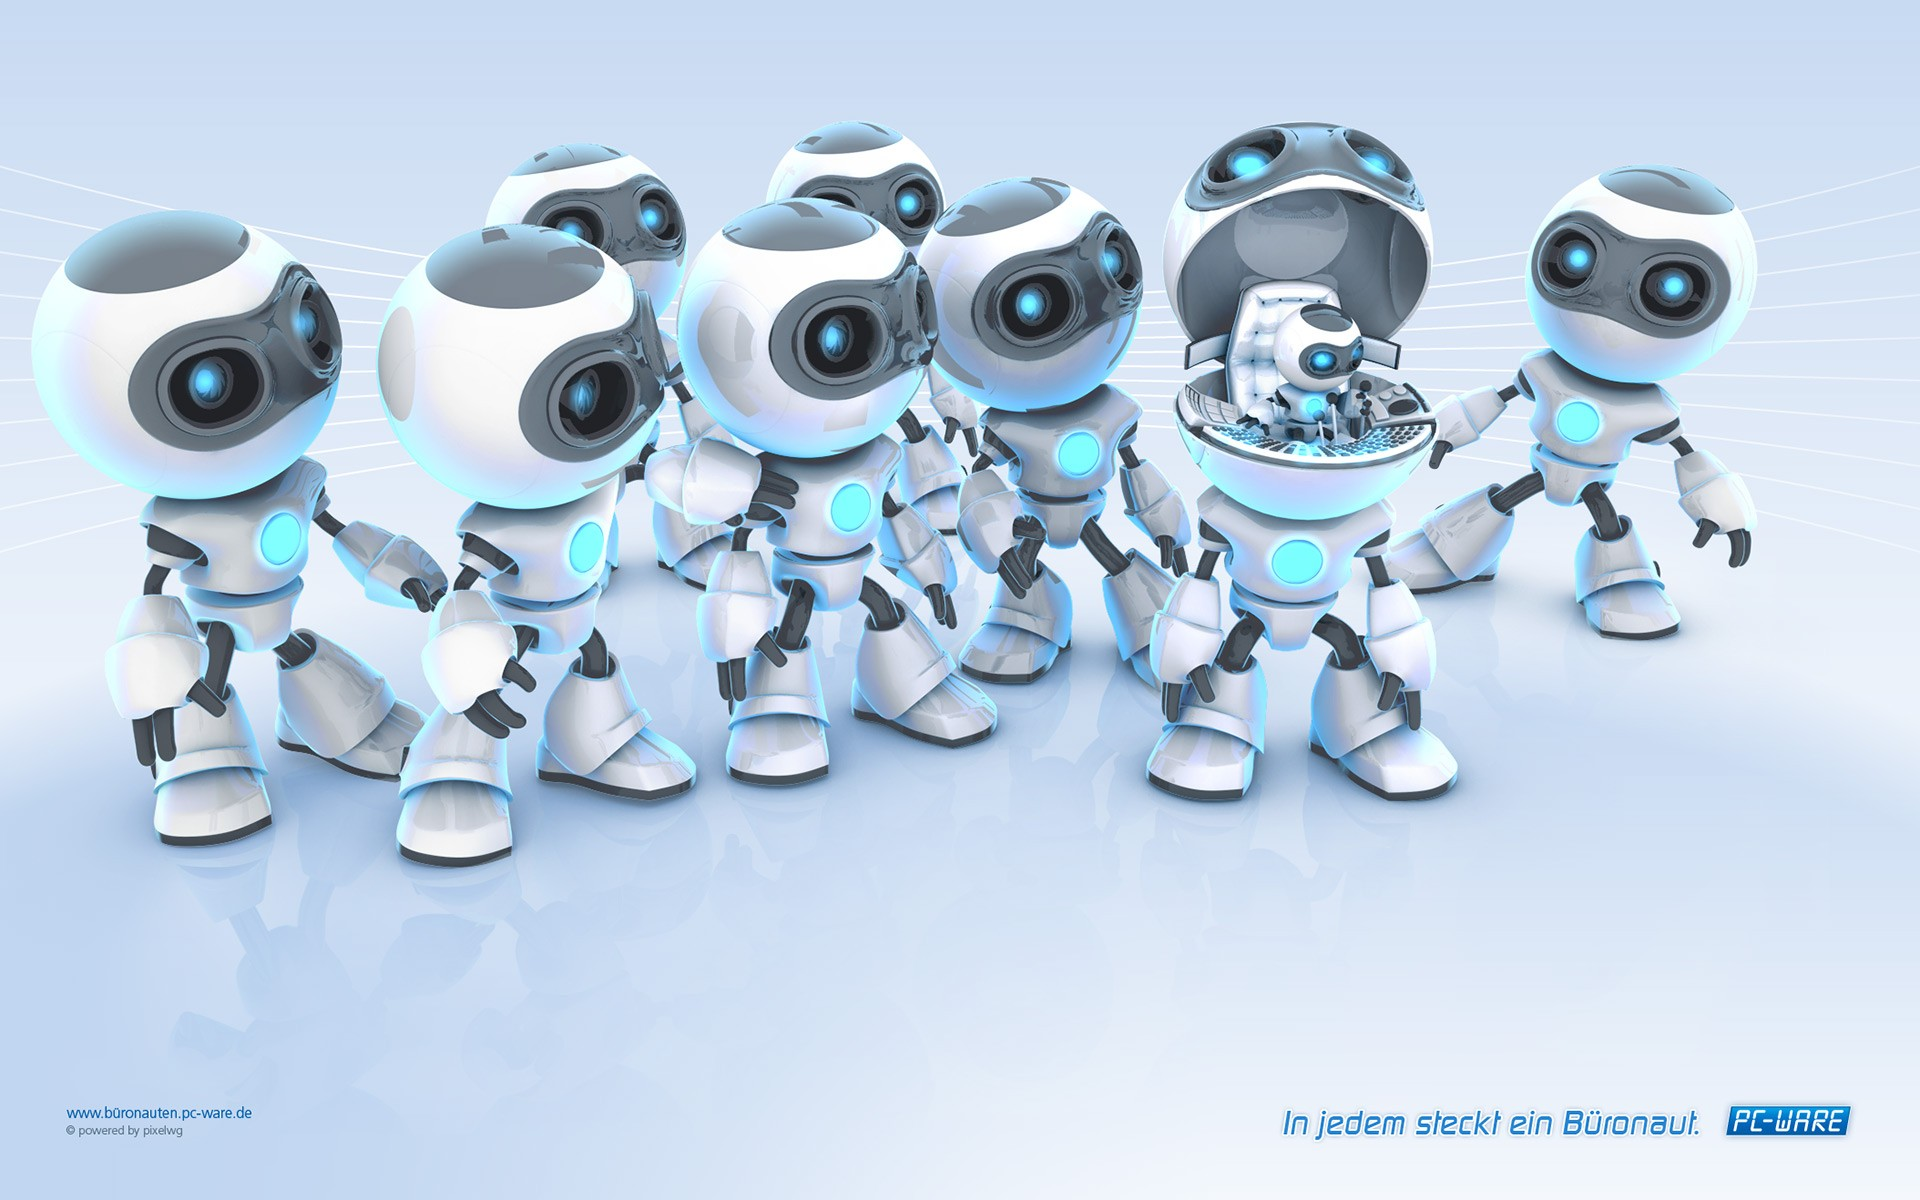 robot-wallpaper-3.jpg